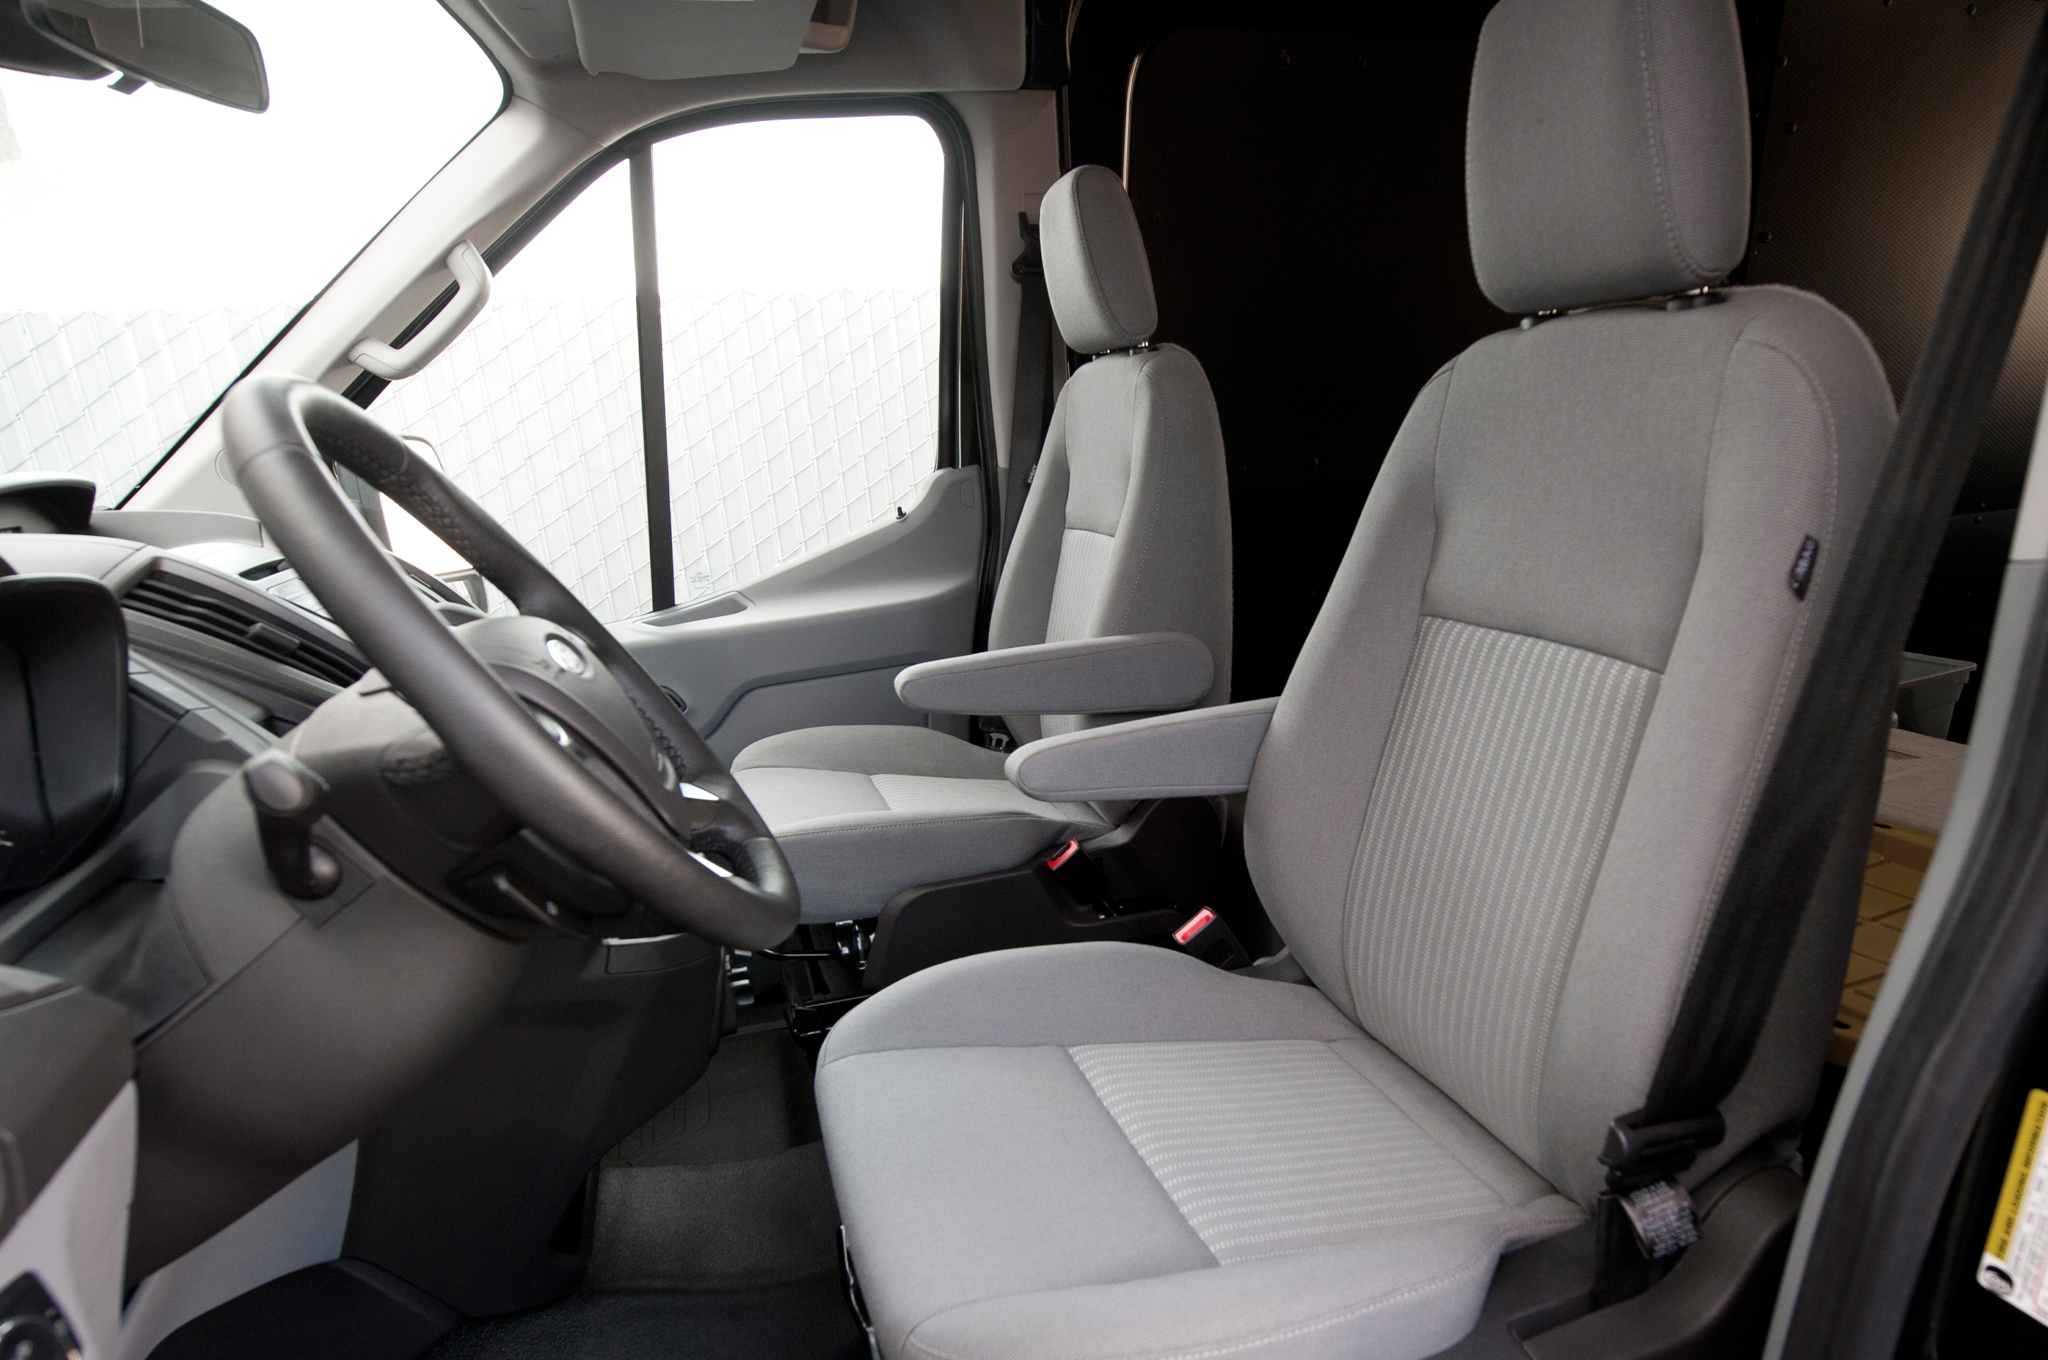 2015 Ford Transit 150 350HD Seats Interior